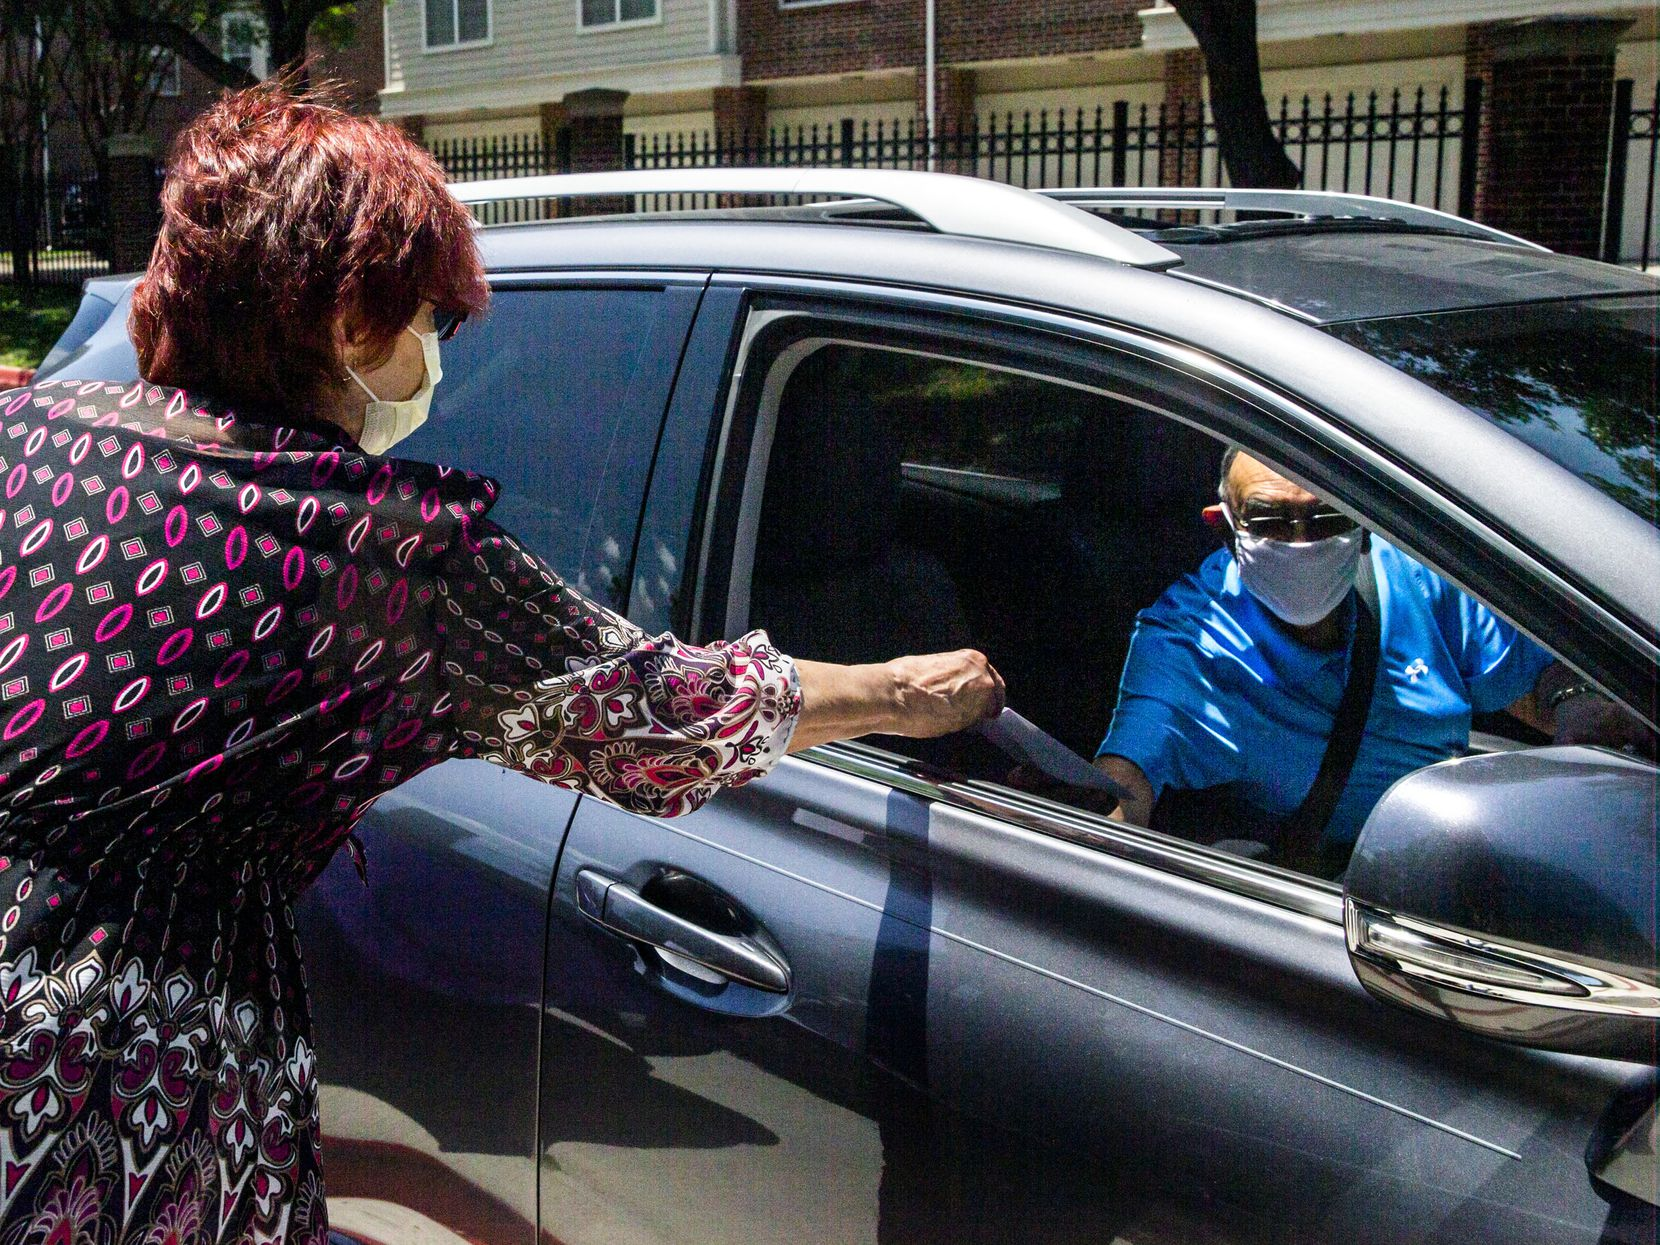 Director of social services Linda Daugherty (left) makes a hand-off to Richard King as supporters picked up the gold ribbons in the May drive-through event.